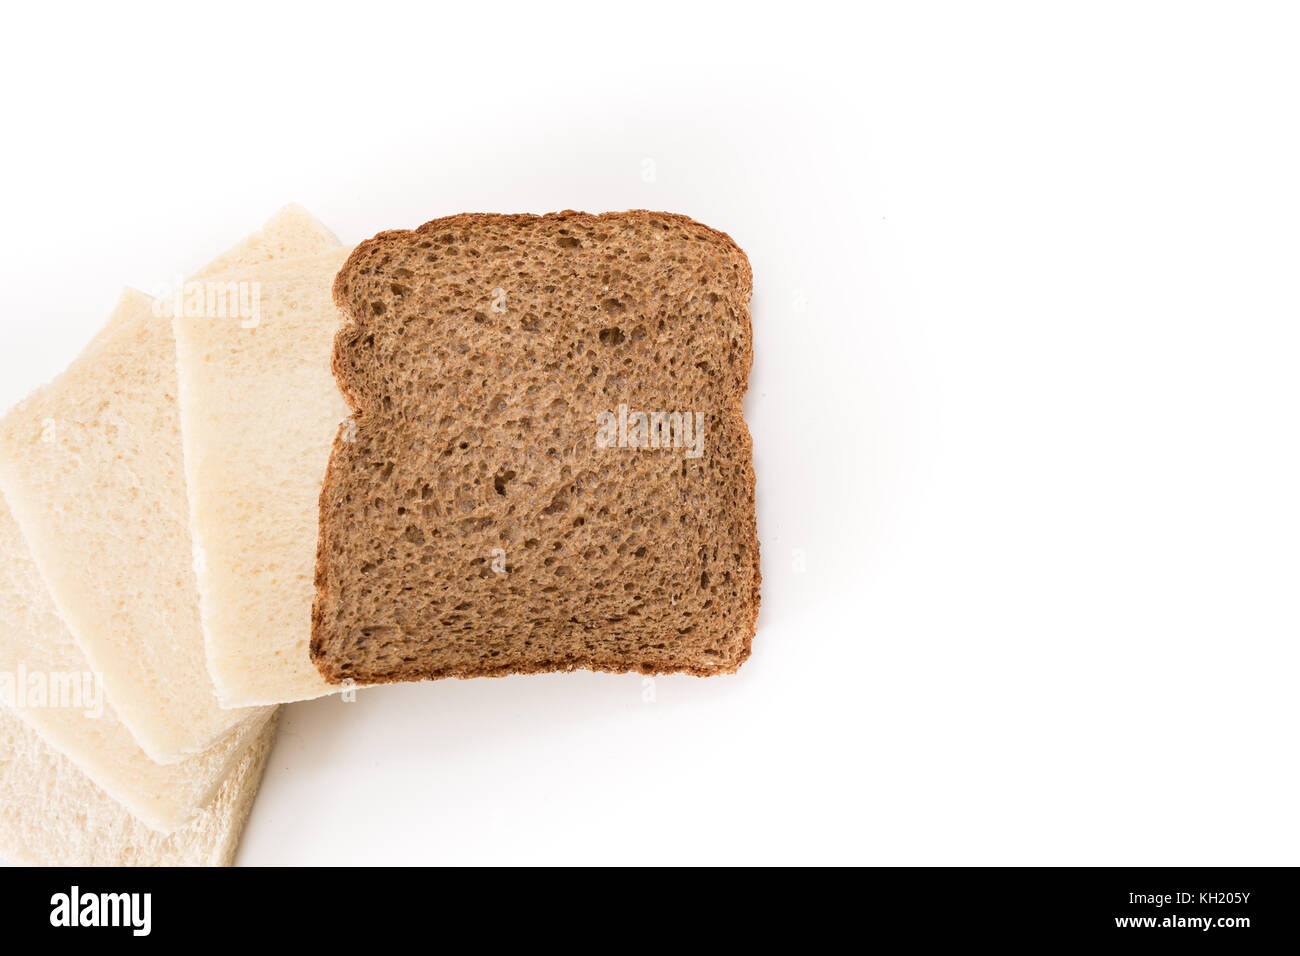 White no crust sandwich bread slices with one of them wholesome brown, on white background. - Stock Image